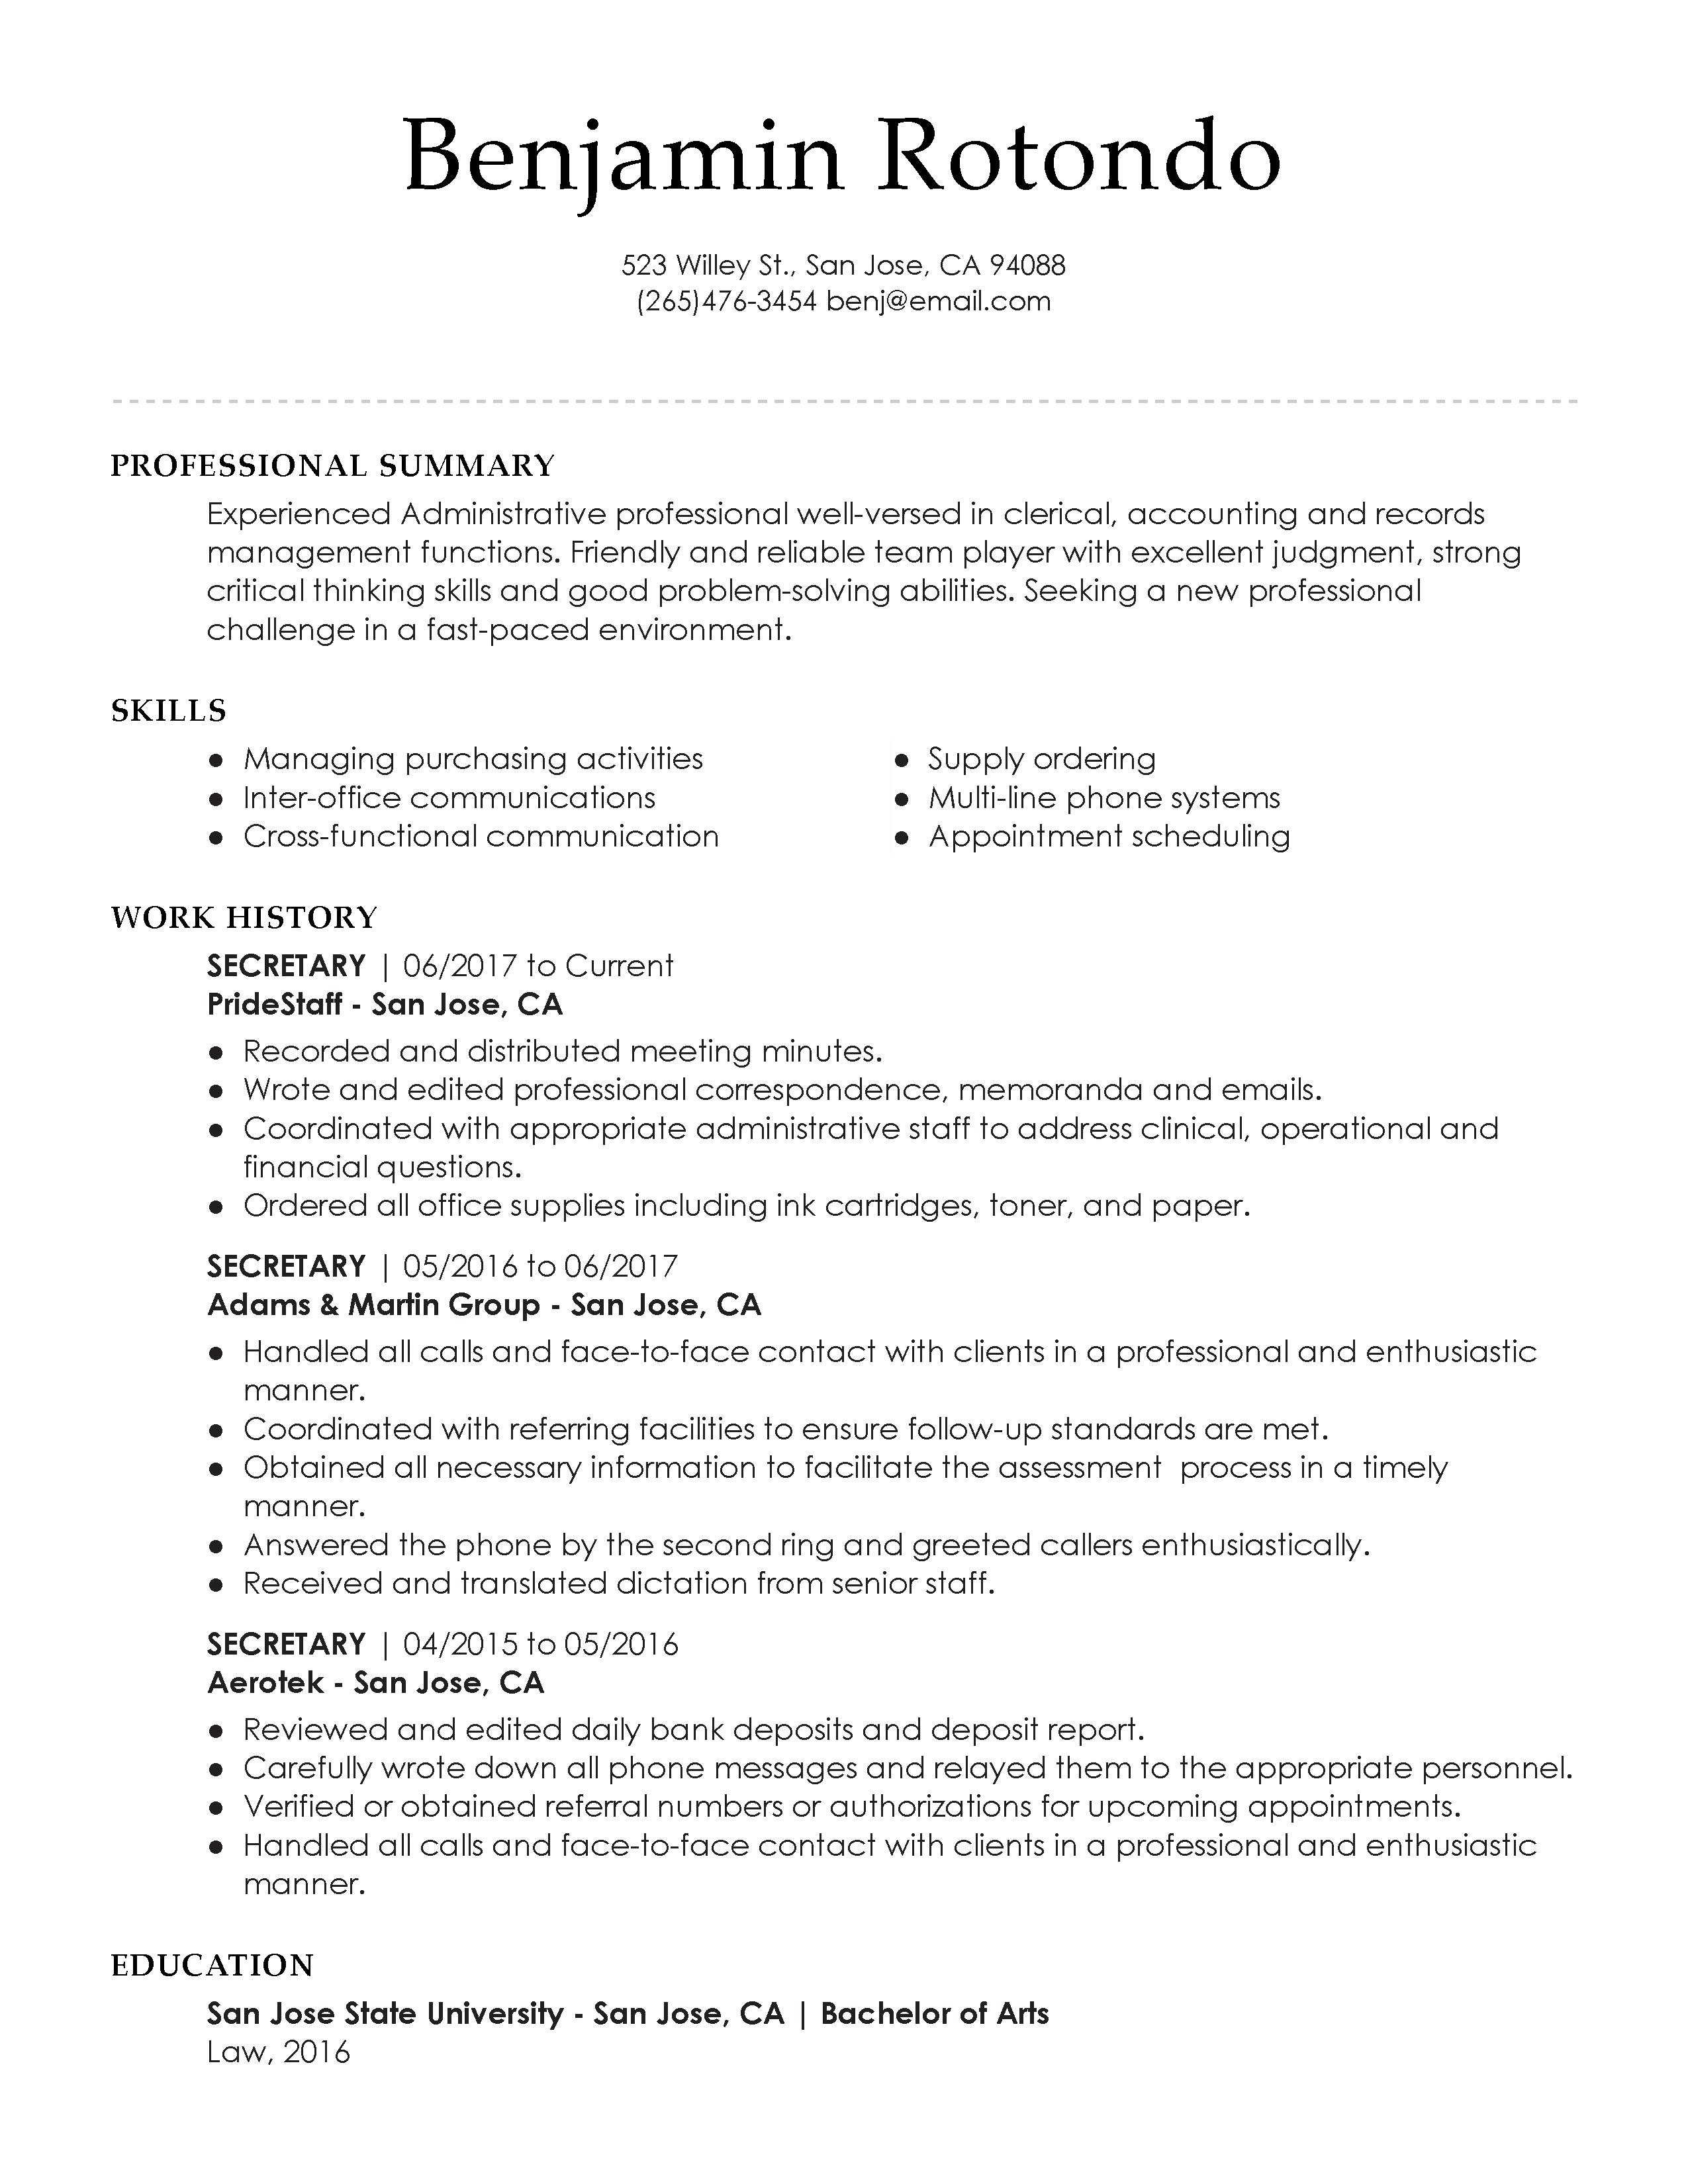 View 30 Samples Of Resumes By Industry & Experience Level